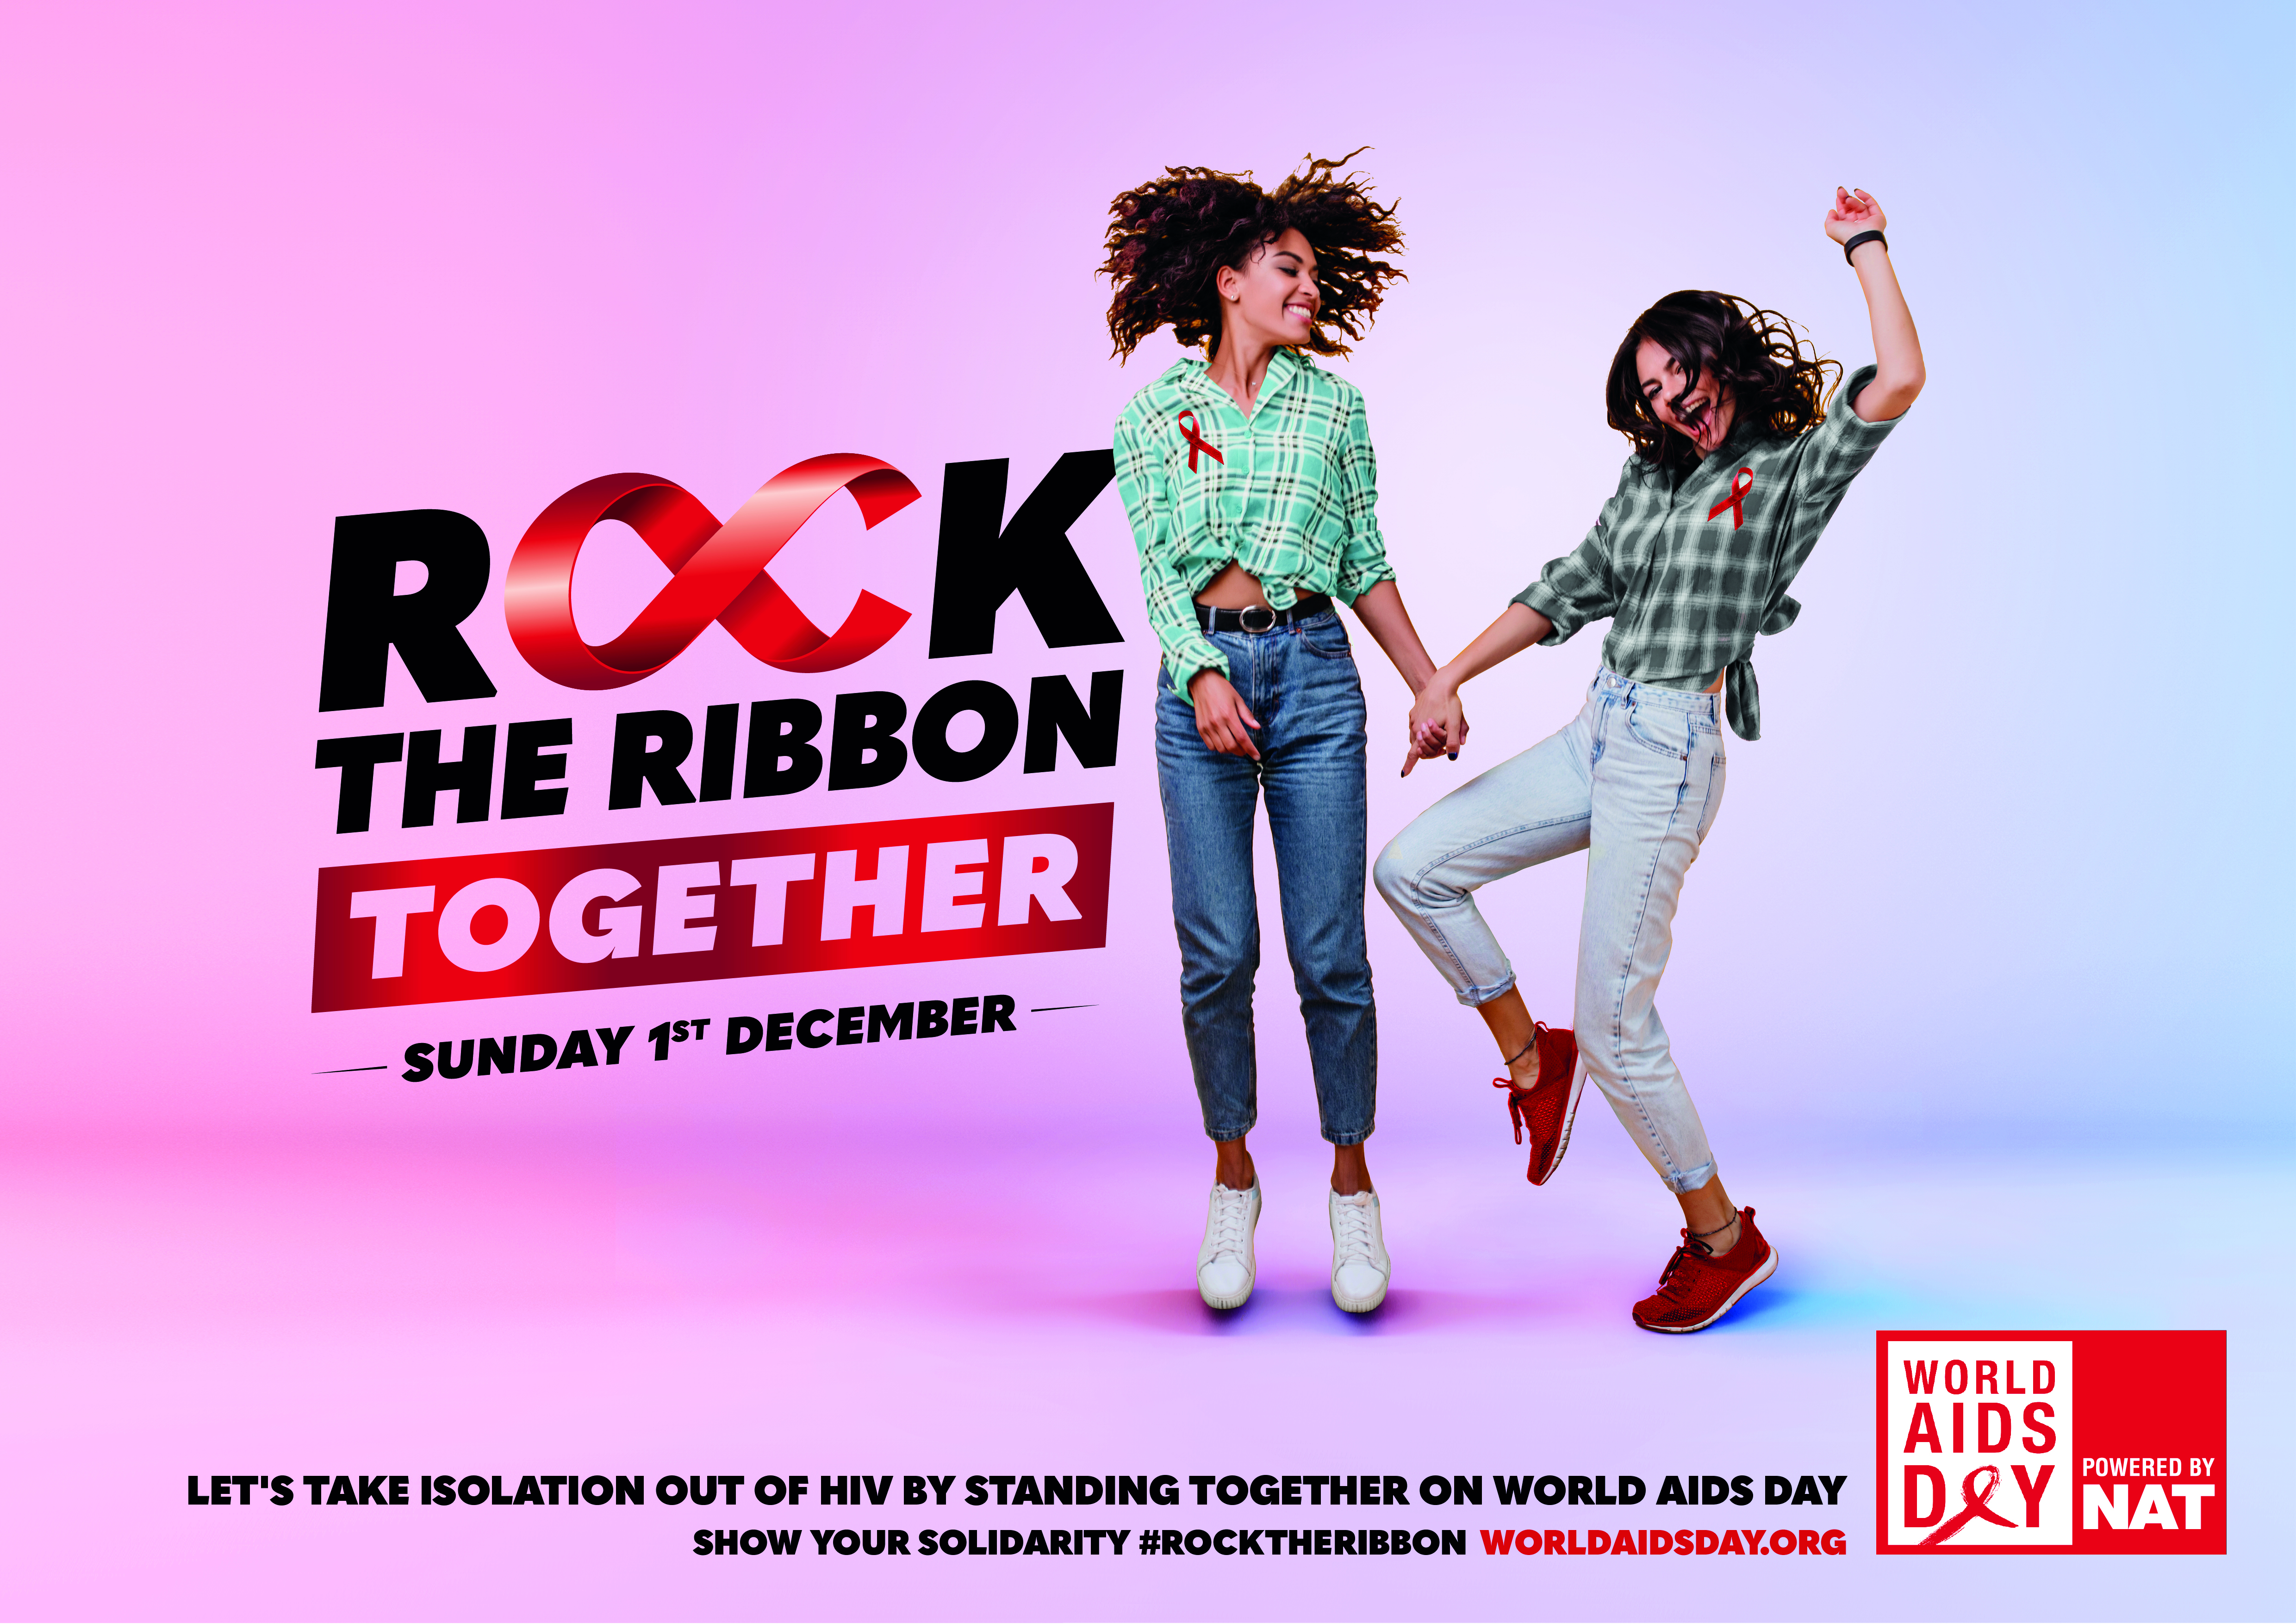 ROCK THE RIBBON TOGETHER POSTER 1 - LANDSCAPE